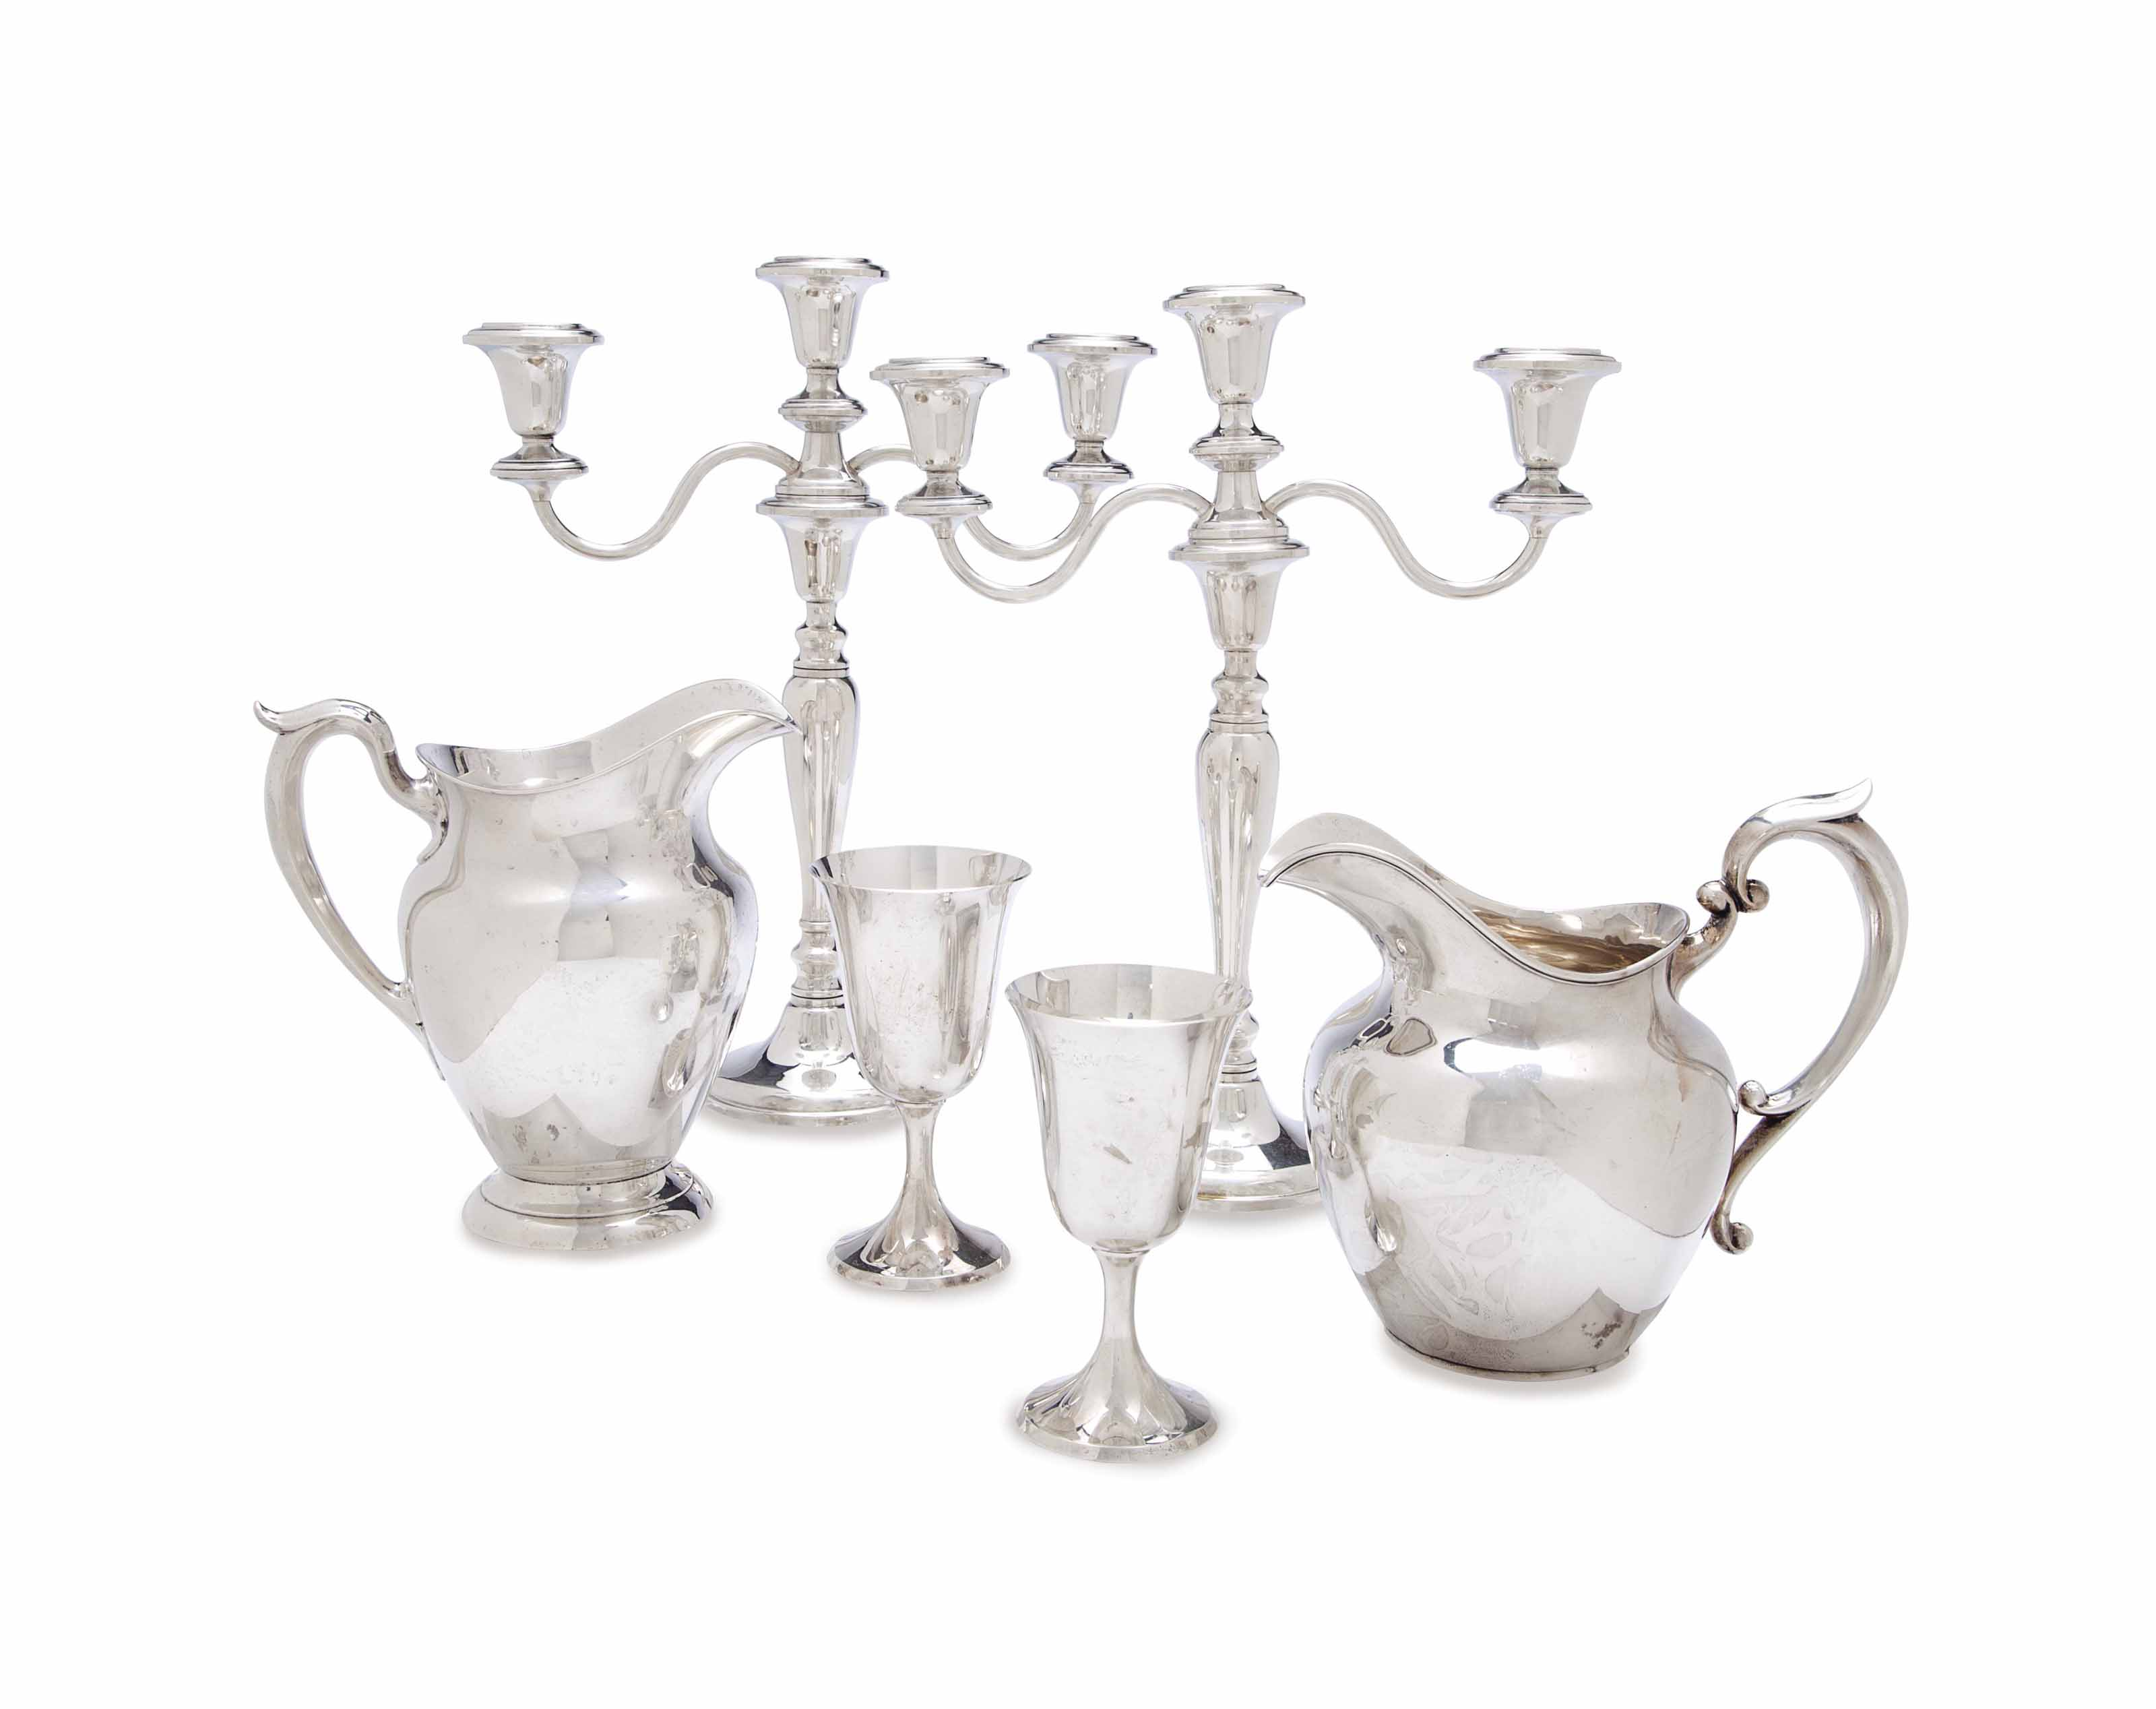 A GROUP OF AMERICAN SILVER TABLE WARES,